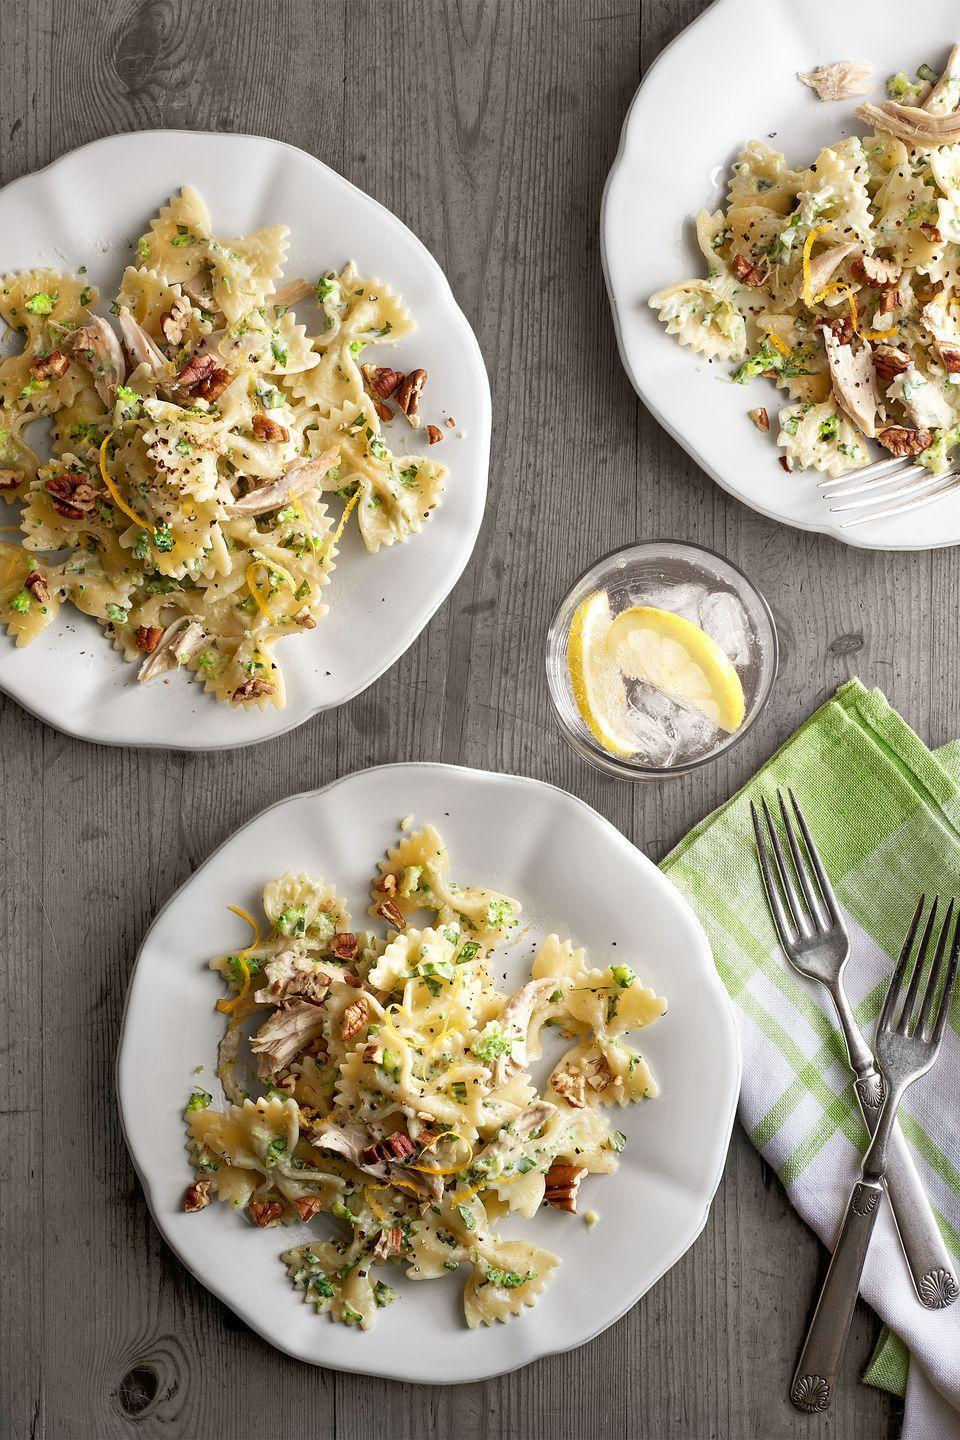 "<p>Toasted pecans add unexpected warmth and crunch to this creamy pasta dish.</p><p><strong><a href=""https://www.countryliving.com/food-drinks/recipes/a6297/creamy-chicken-broccoli-pesto-bow-ties-recipe-clx0215/"" rel=""nofollow noopener"" target=""_blank"" data-ylk=""slk:Get the recipe."" class=""link rapid-noclick-resp"">Get the recipe.</a></strong></p>"